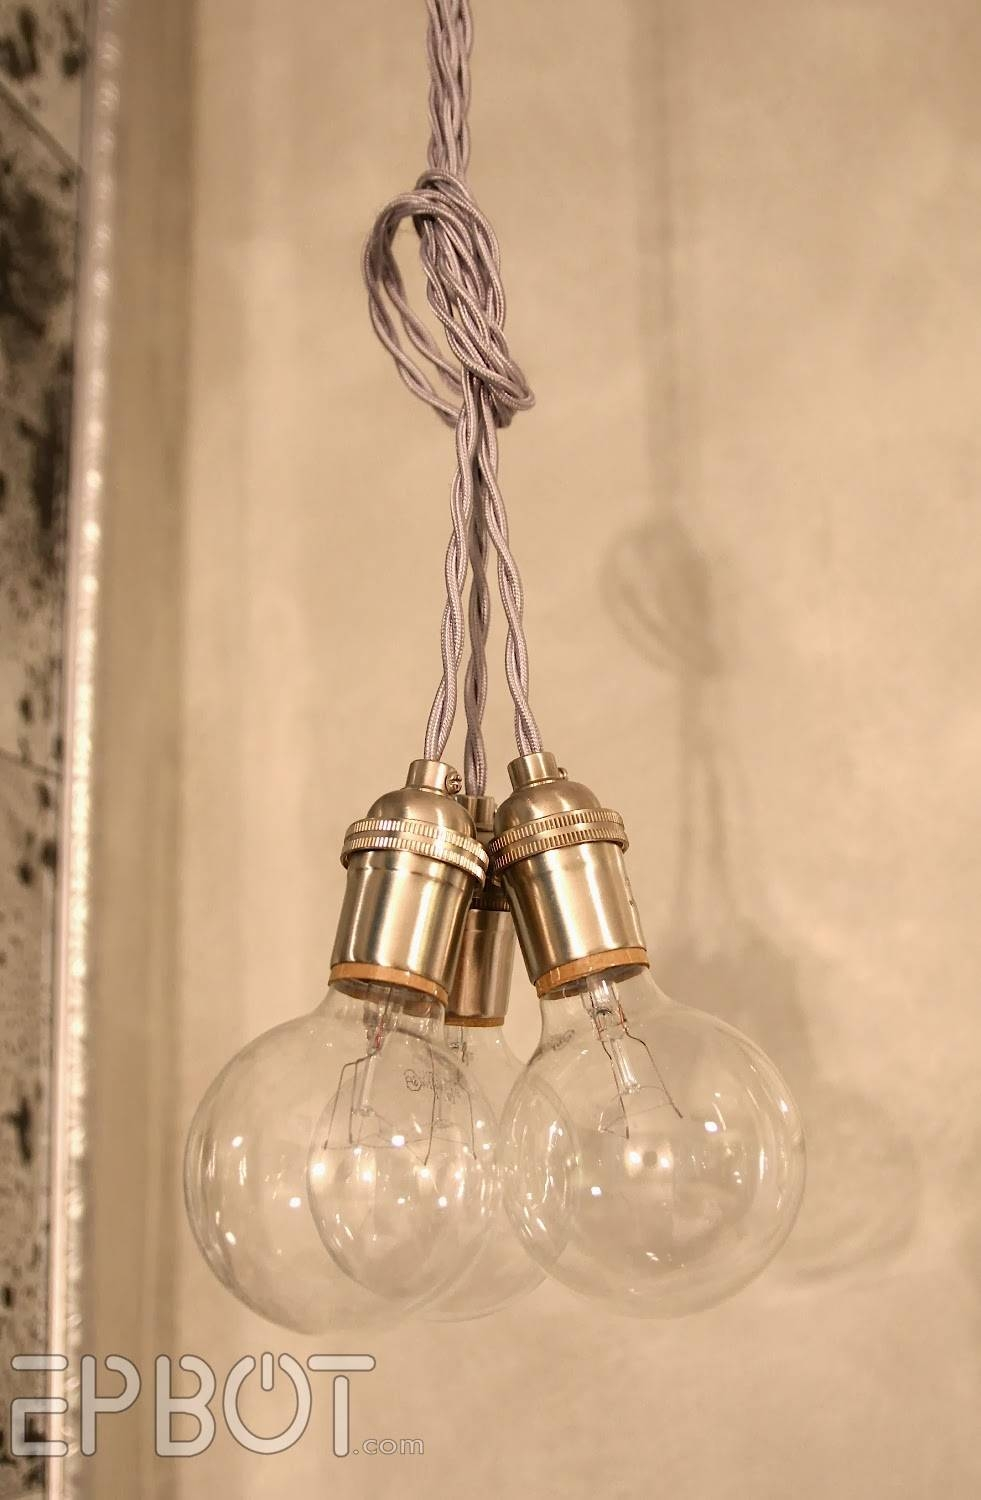 Epbot: Wire Your Own Pendant Lighting - Cheap, Easy, & Fun! with regard to Bare Bulb Pendant Lights Fixtures (Image 9 of 15)